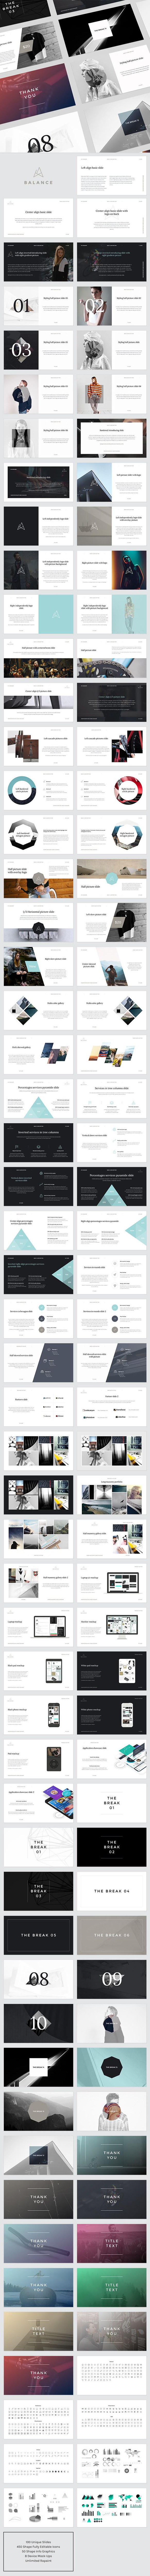 BALANCE Keynote Presentation - Creative Keynote Templates